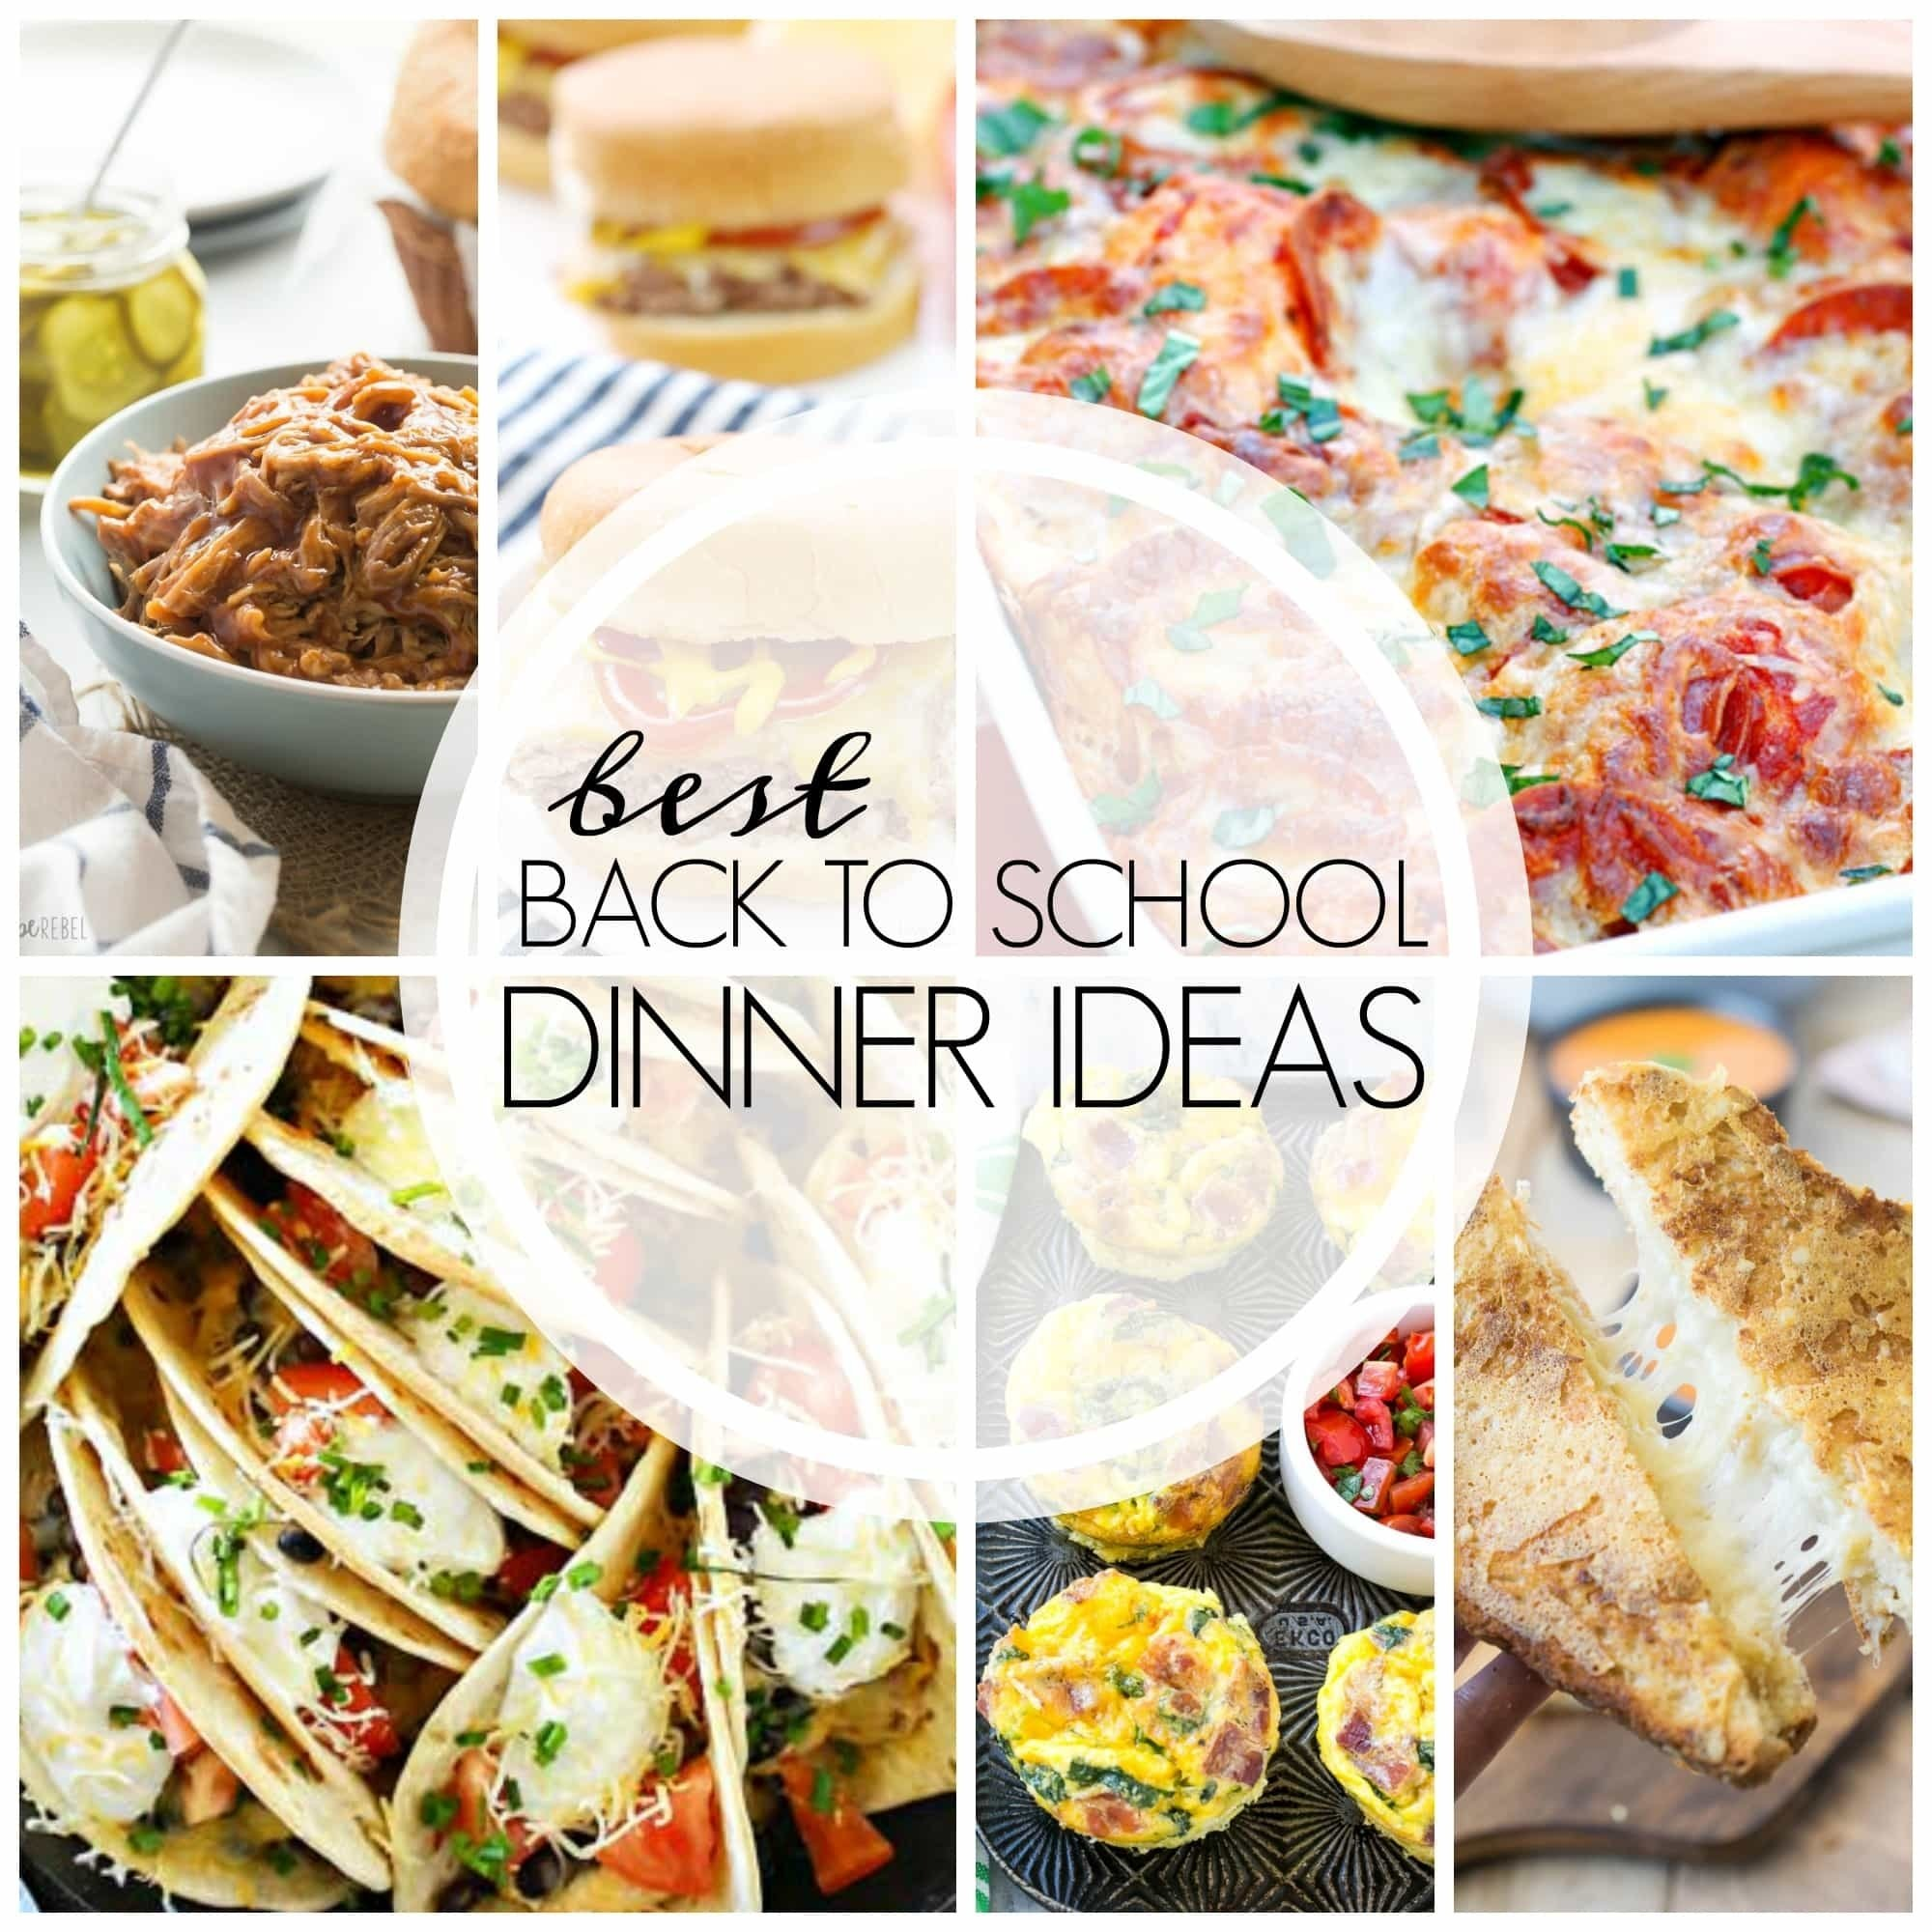 10 Unique Weeknight Dinner Ideas For Families easy dinner recipes 20 family friendly ideas self proclaimed foodie 1 2021